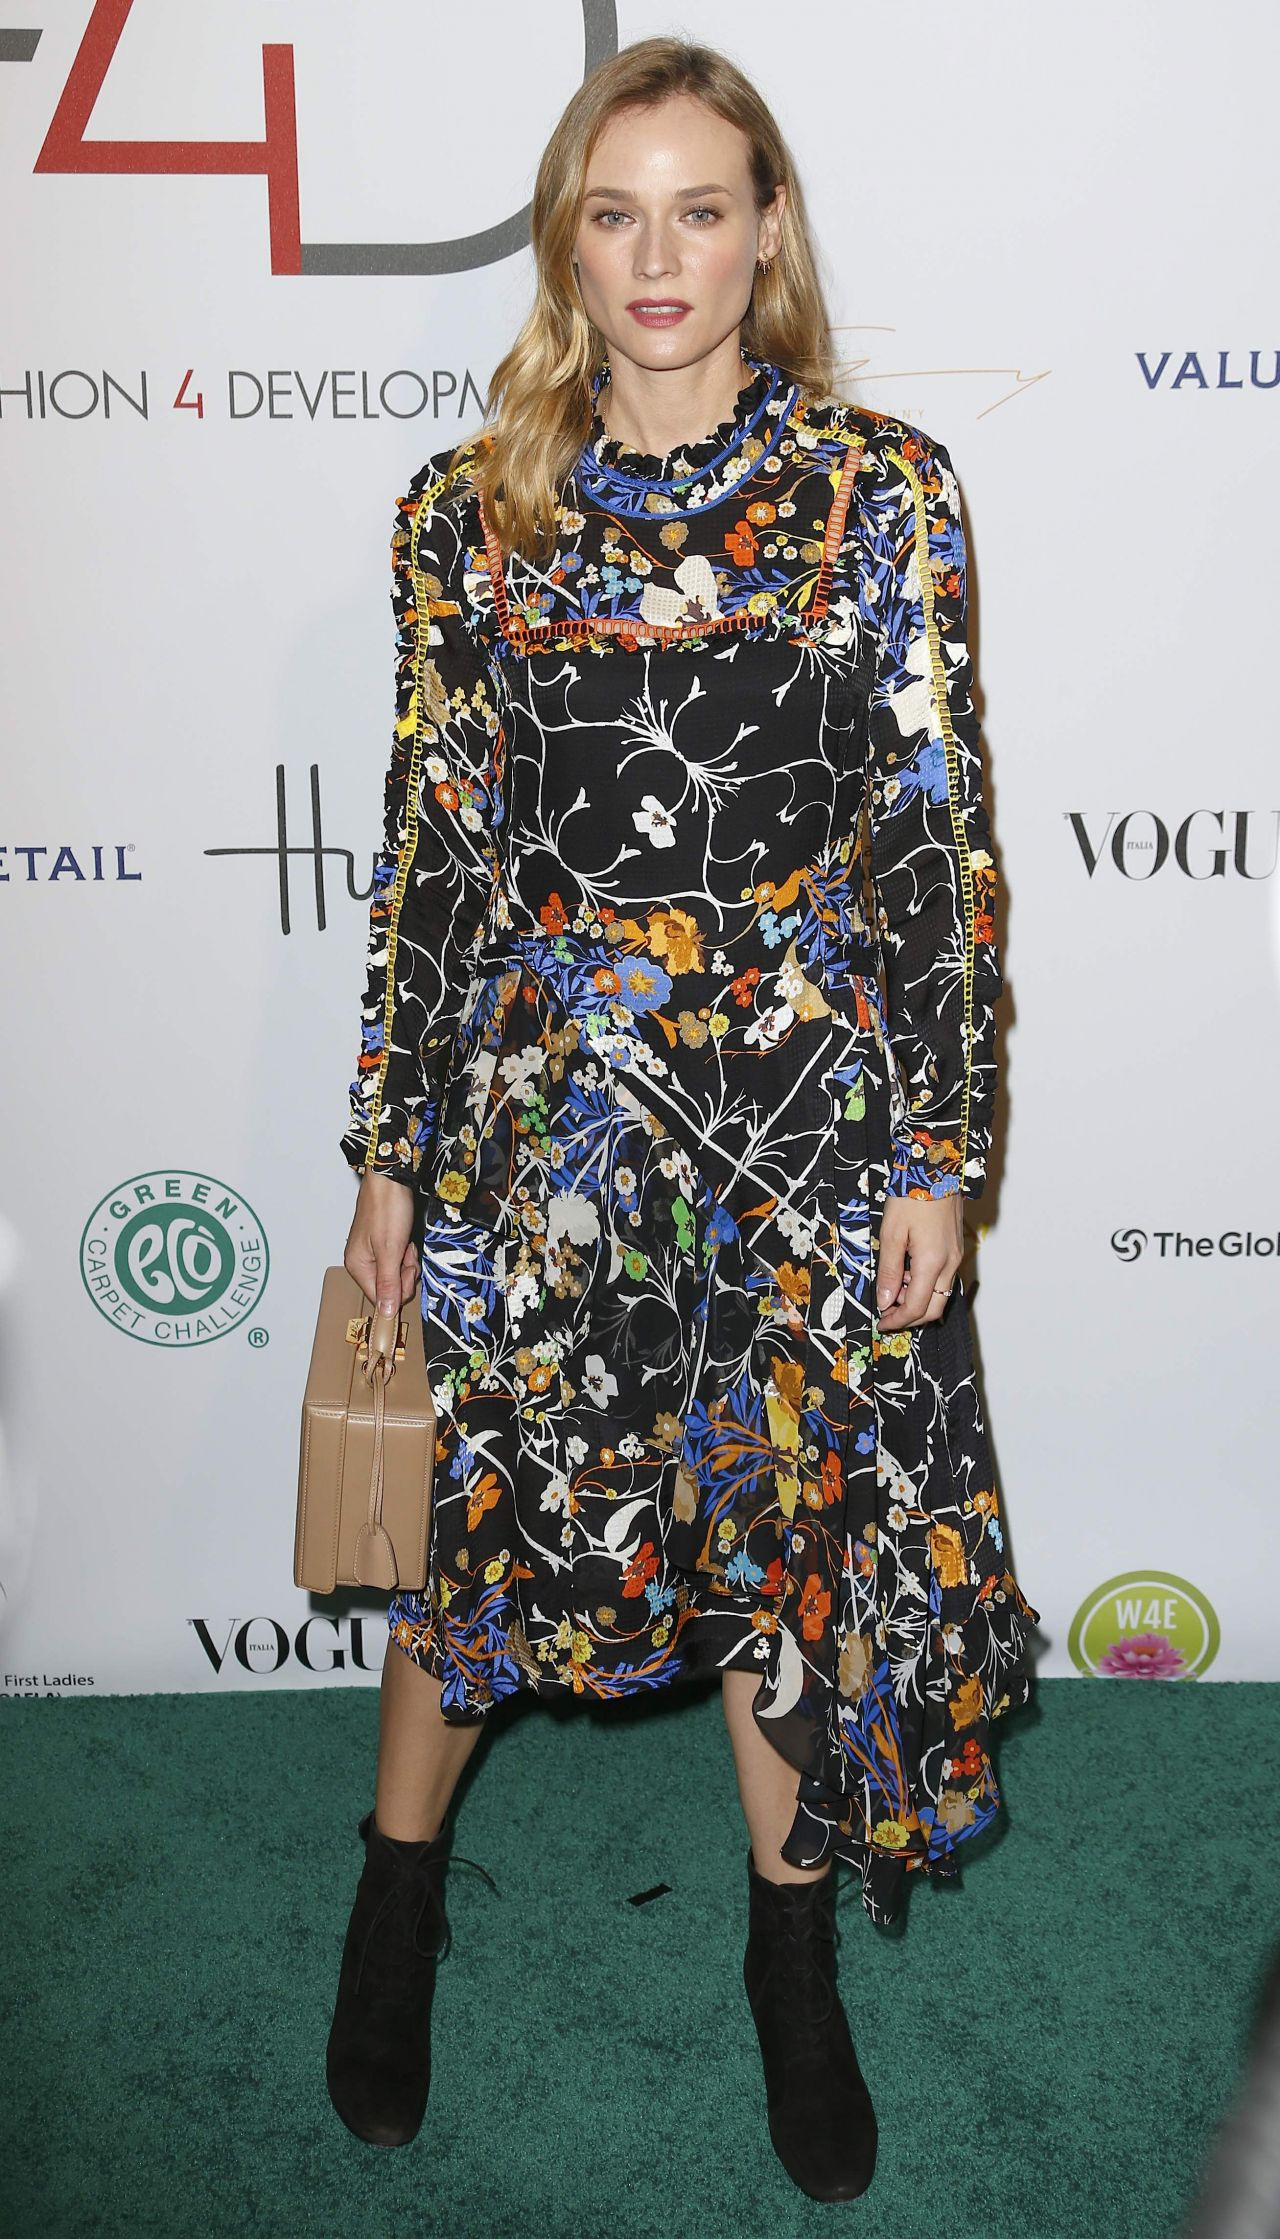 diane-kruger-2015-fashion-4-development-s-official-first-ladies-luncheon-in-nyc_9